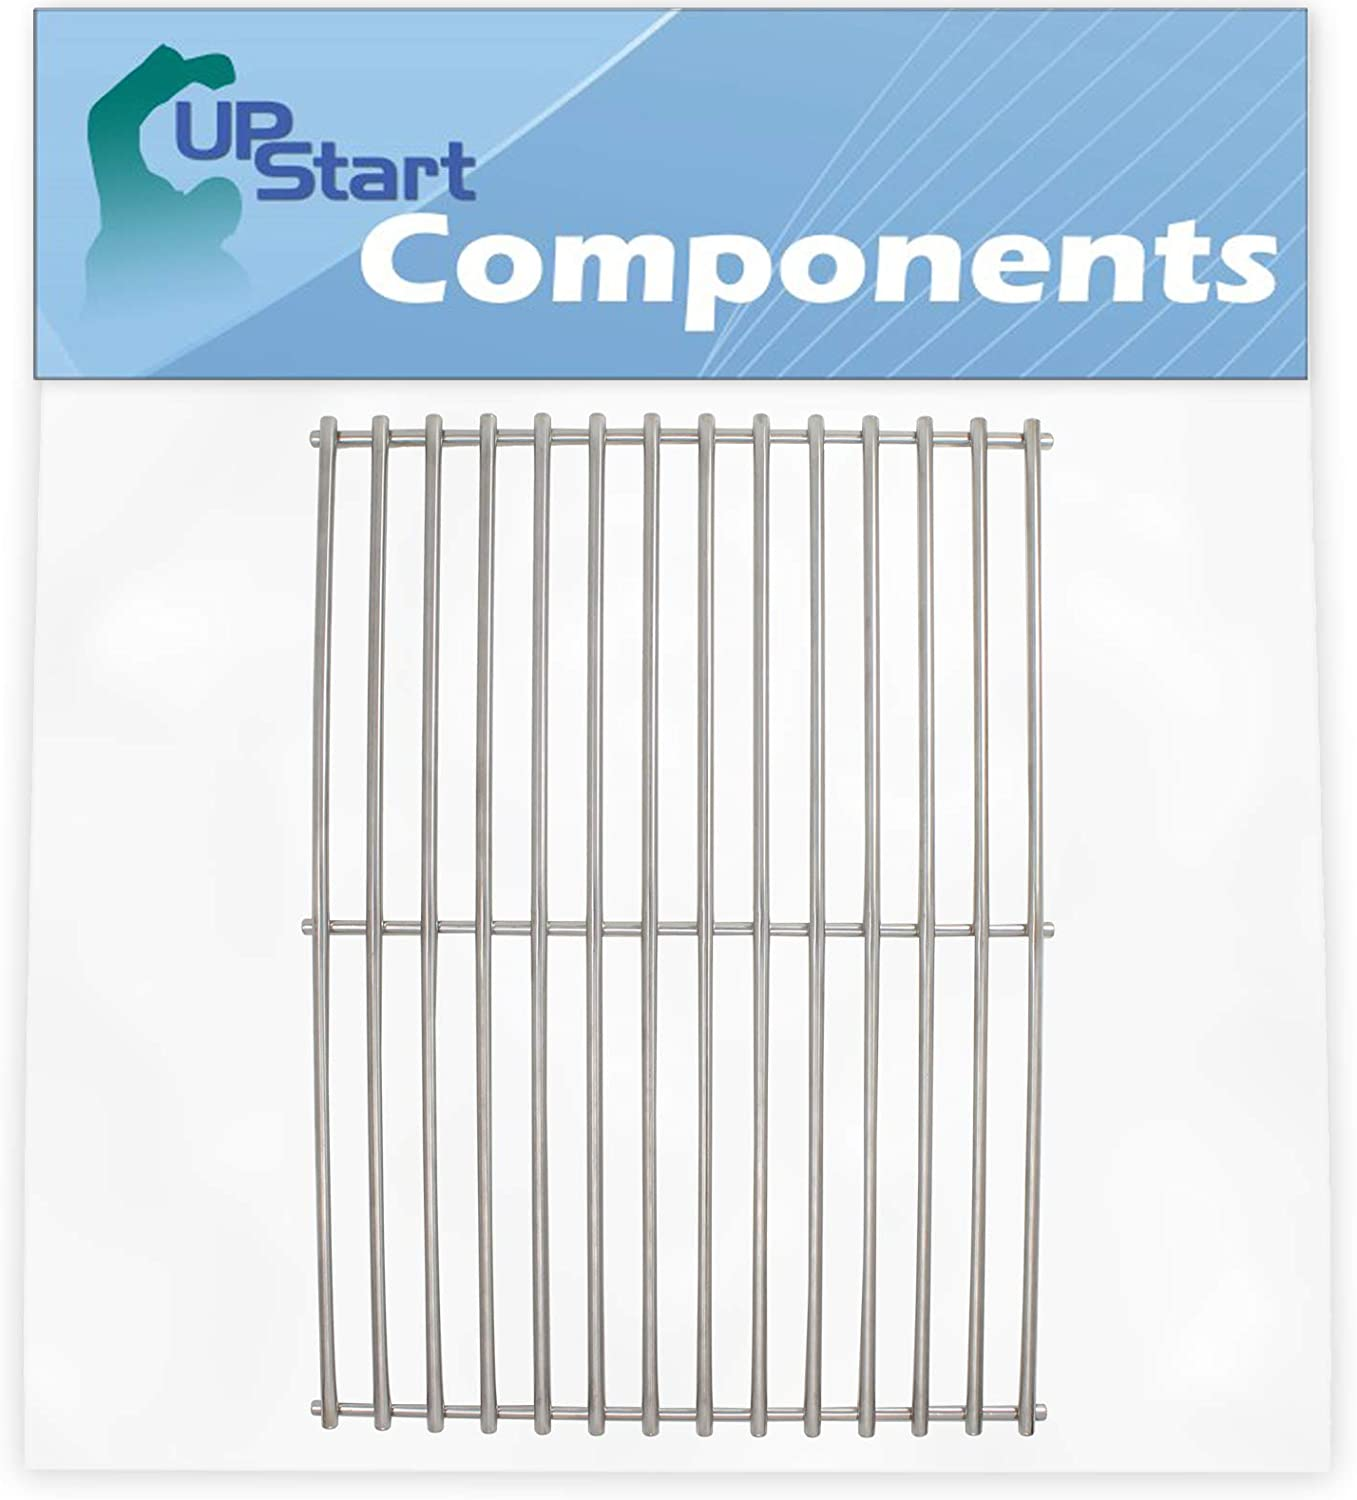 UpStart Components BBQ Grill New color Cooking Grates fo Replacement Selling Parts